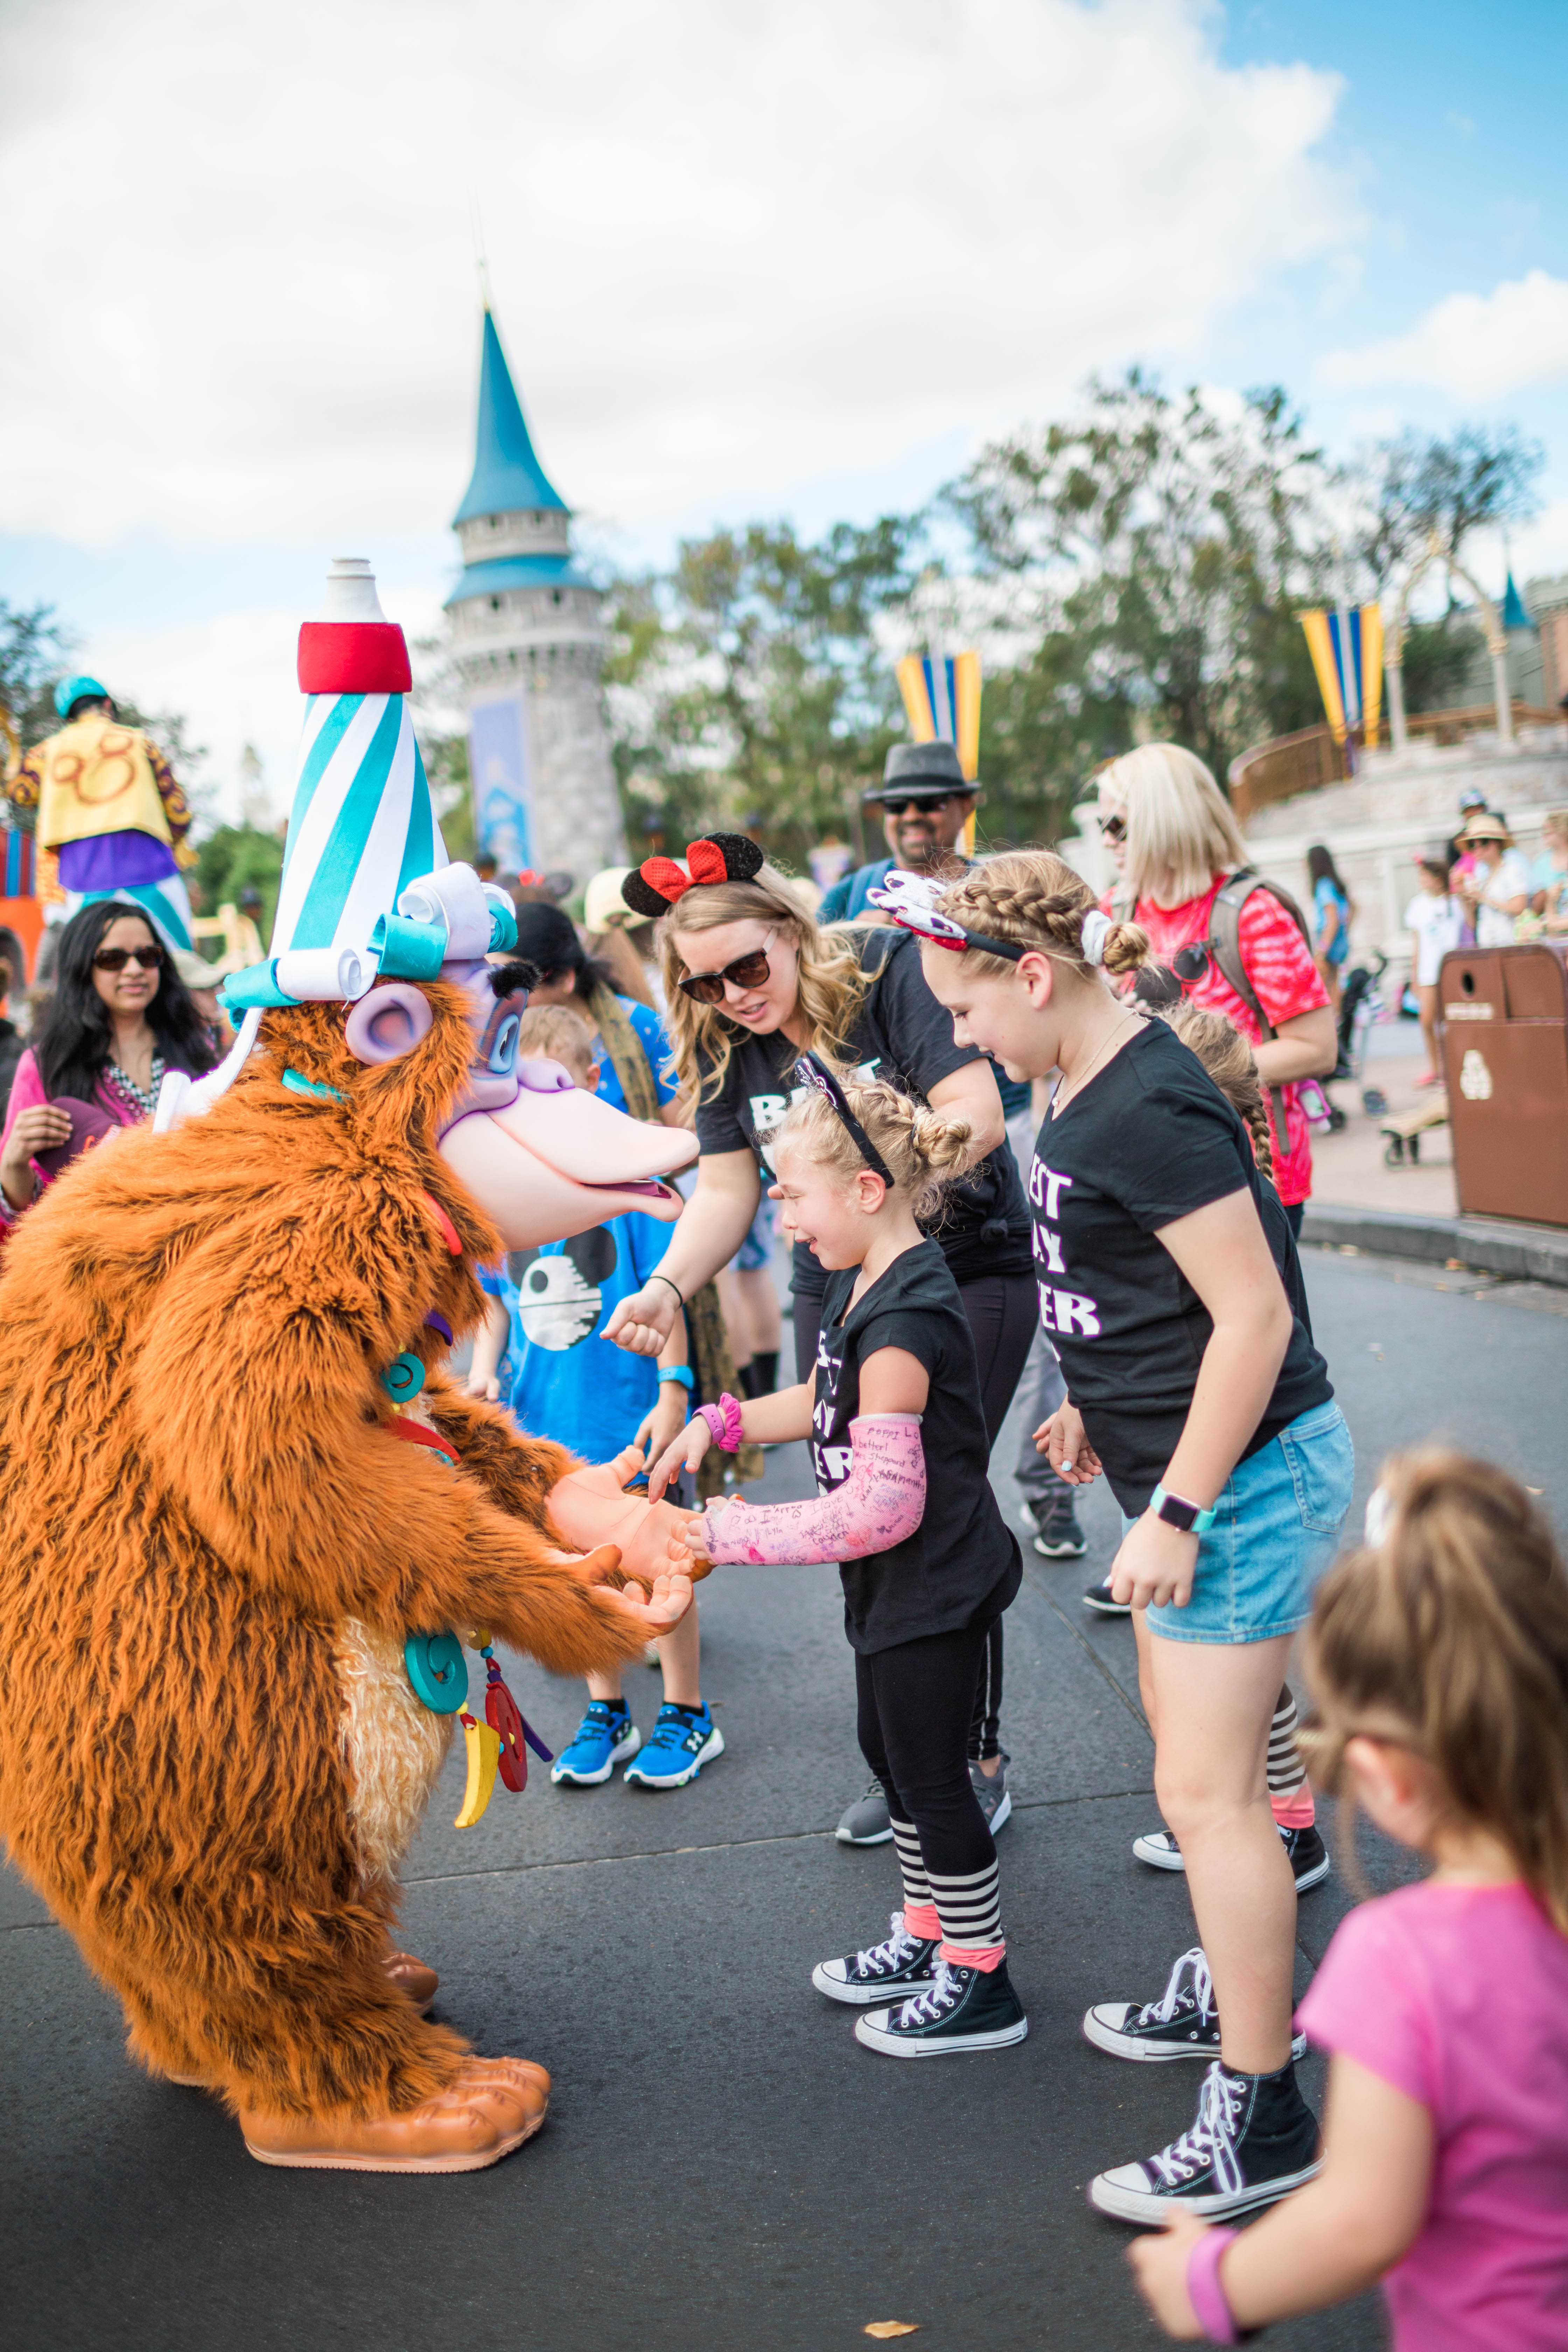 Kids, Mom and Characters dancing in the street at Disney World